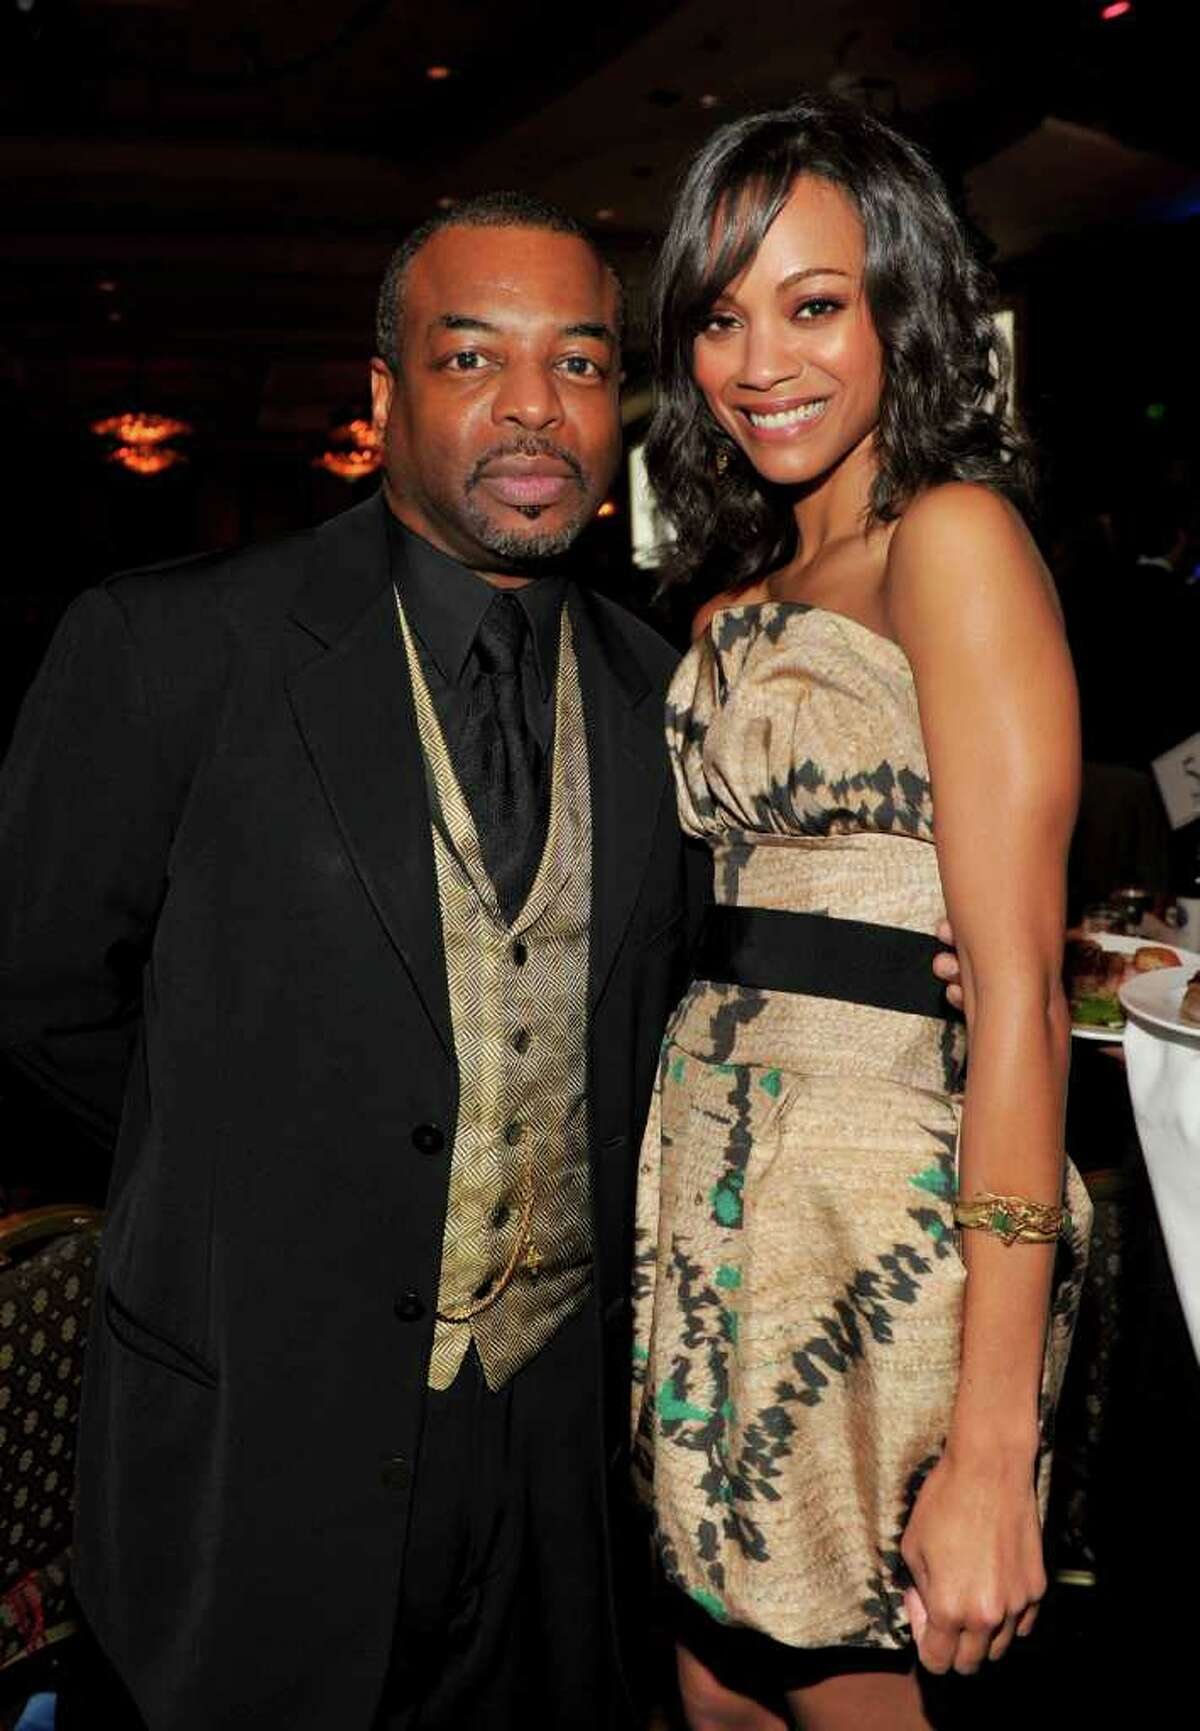 CENTURY CITY, CA - JANUARY 30: Actor LeVar Burton and actress Zoe Saldana in the audience during the 62nd Annual Directors Guild Of America Awards at the Hyatt Regency Century Plaza on January 30, 2010 in Century City, California. (Photo by Alberto E. Rodriguez/Getty Images for DGA)